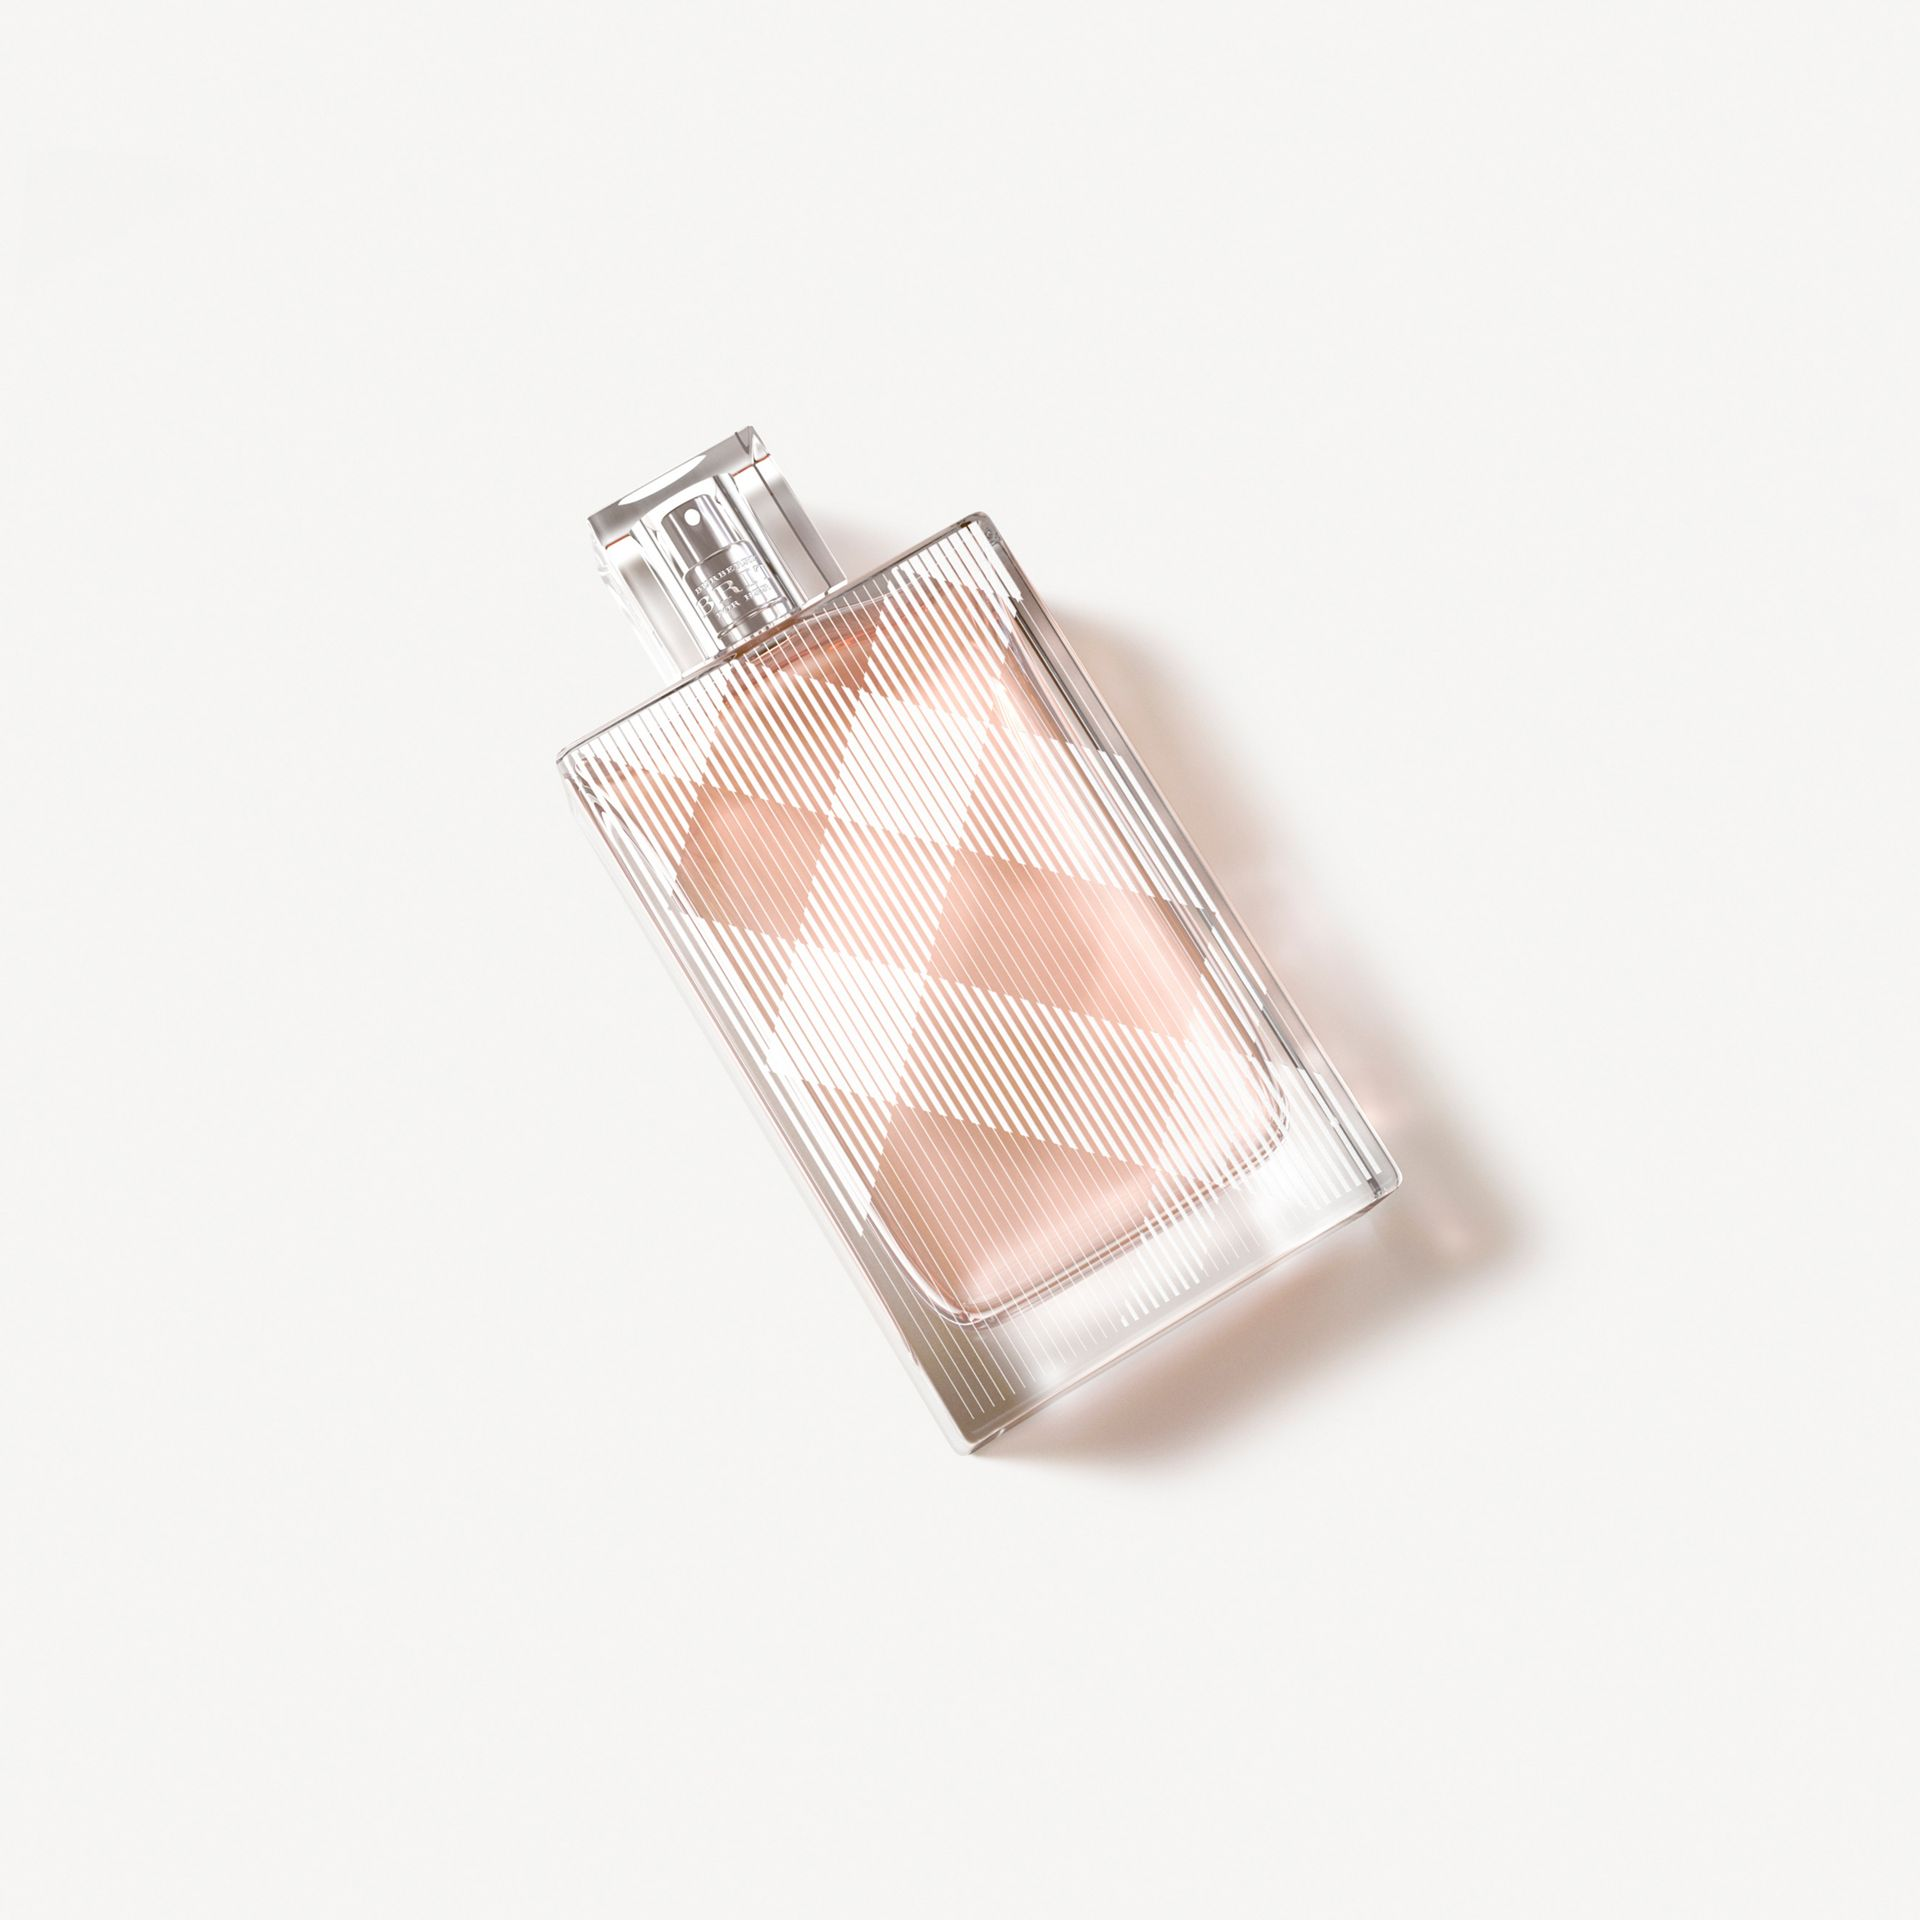 Burberry Brit For Her Eau De Toilette 100 ml - Galerie-Bild 1